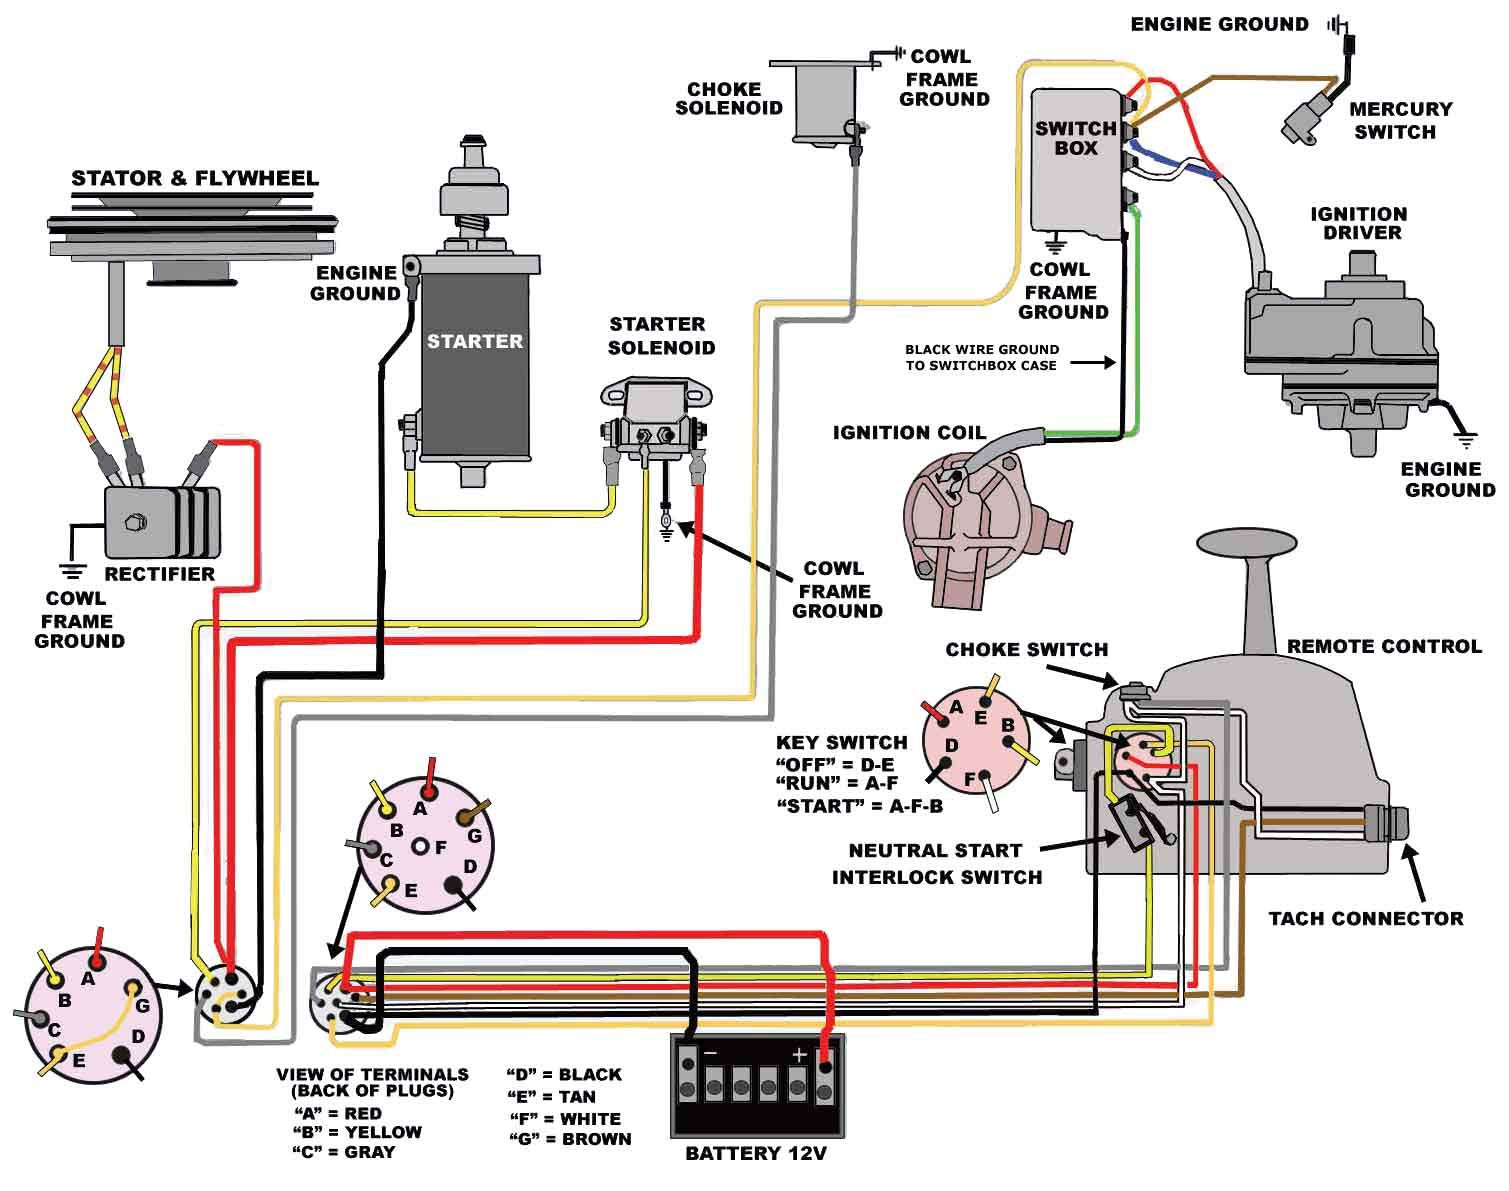 13cfb2d962bcd0c03103625817b7d51d mercury outboard wiring diagram diagram pinterest mercury find wiring diagram for 87 ford f 150 at soozxer.org